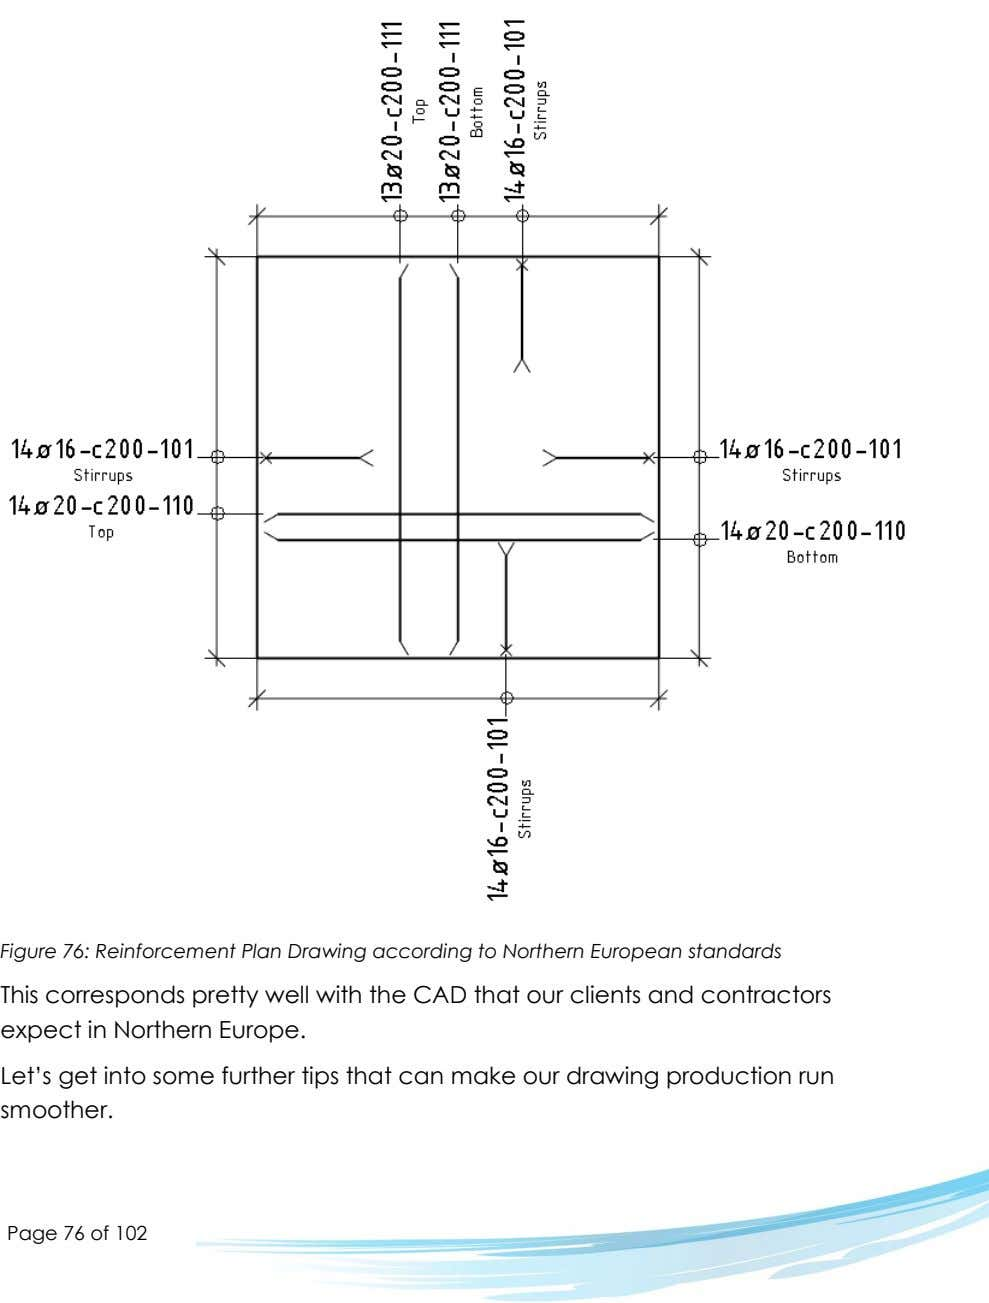 Figure 76: Reinforcement Plan Drawing according to Northern European standards This corresponds pretty well with